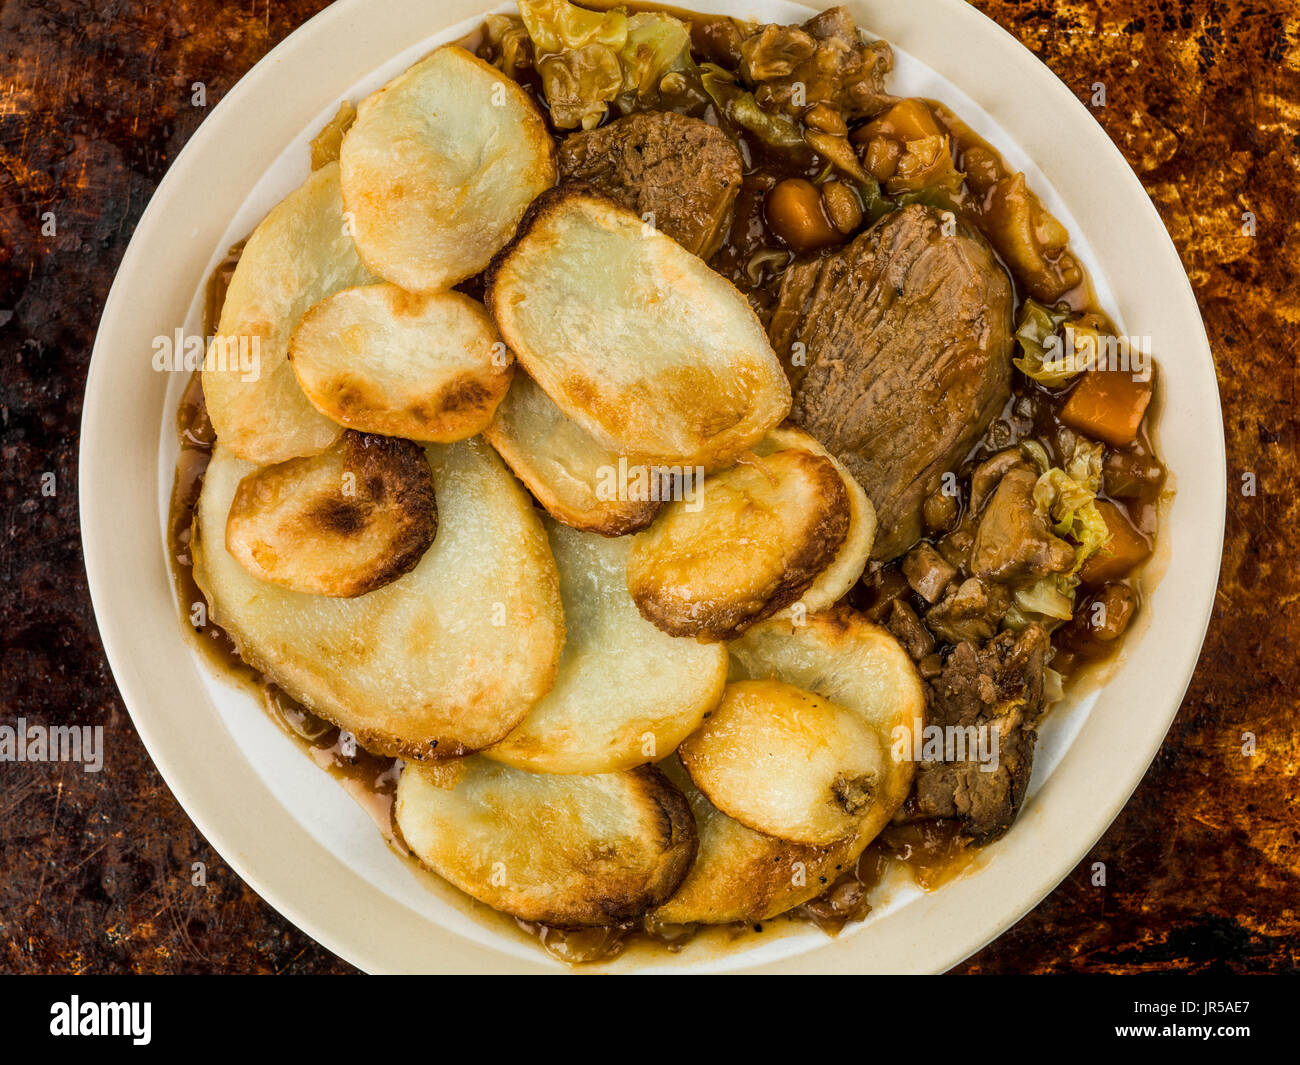 Lamb Hotpot With Sliced Potatoes and Onion Gravy Against a Distressed Burnt Oven or Baking Tray - Stock Image